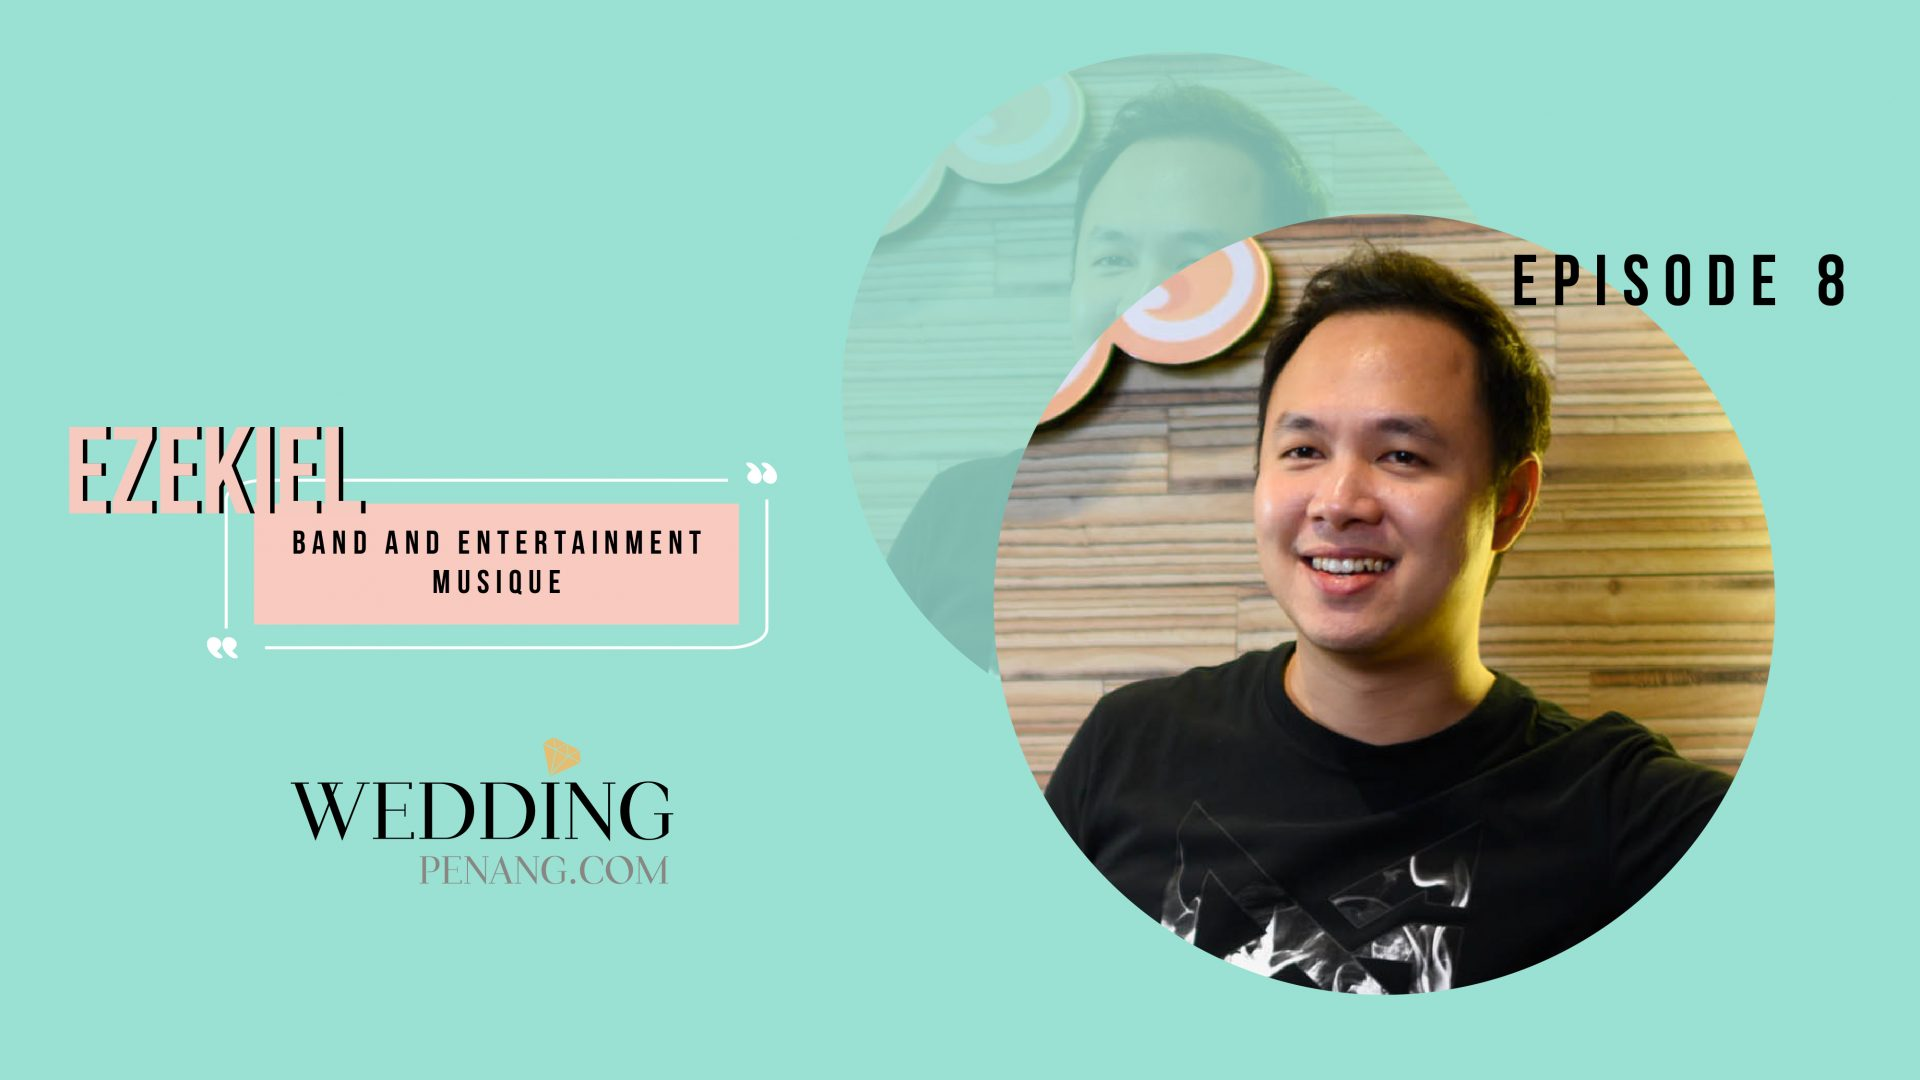 10+1 Steps to a Perfect Wedding Episode 8: Choosing Wedding Entertainment Band